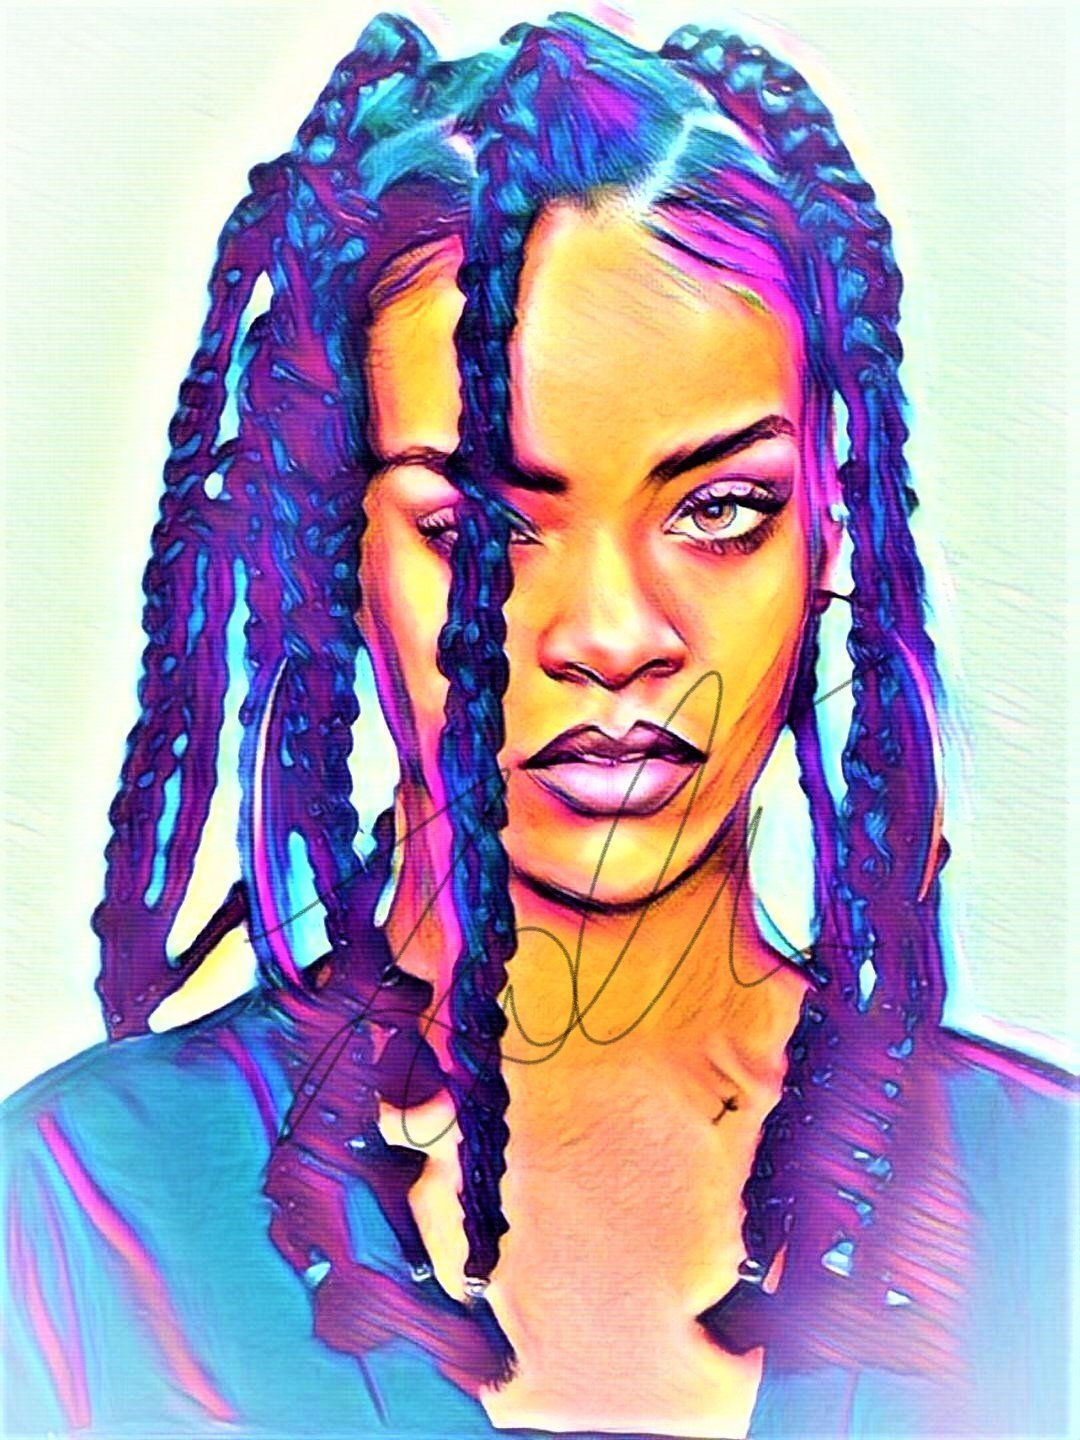 Rihanna Abstract Drawing Print Poster Hand Drawn Pop Art Vibrant Painting #RIHANNA_ABSTRACT1: Amazon.es: Handmade